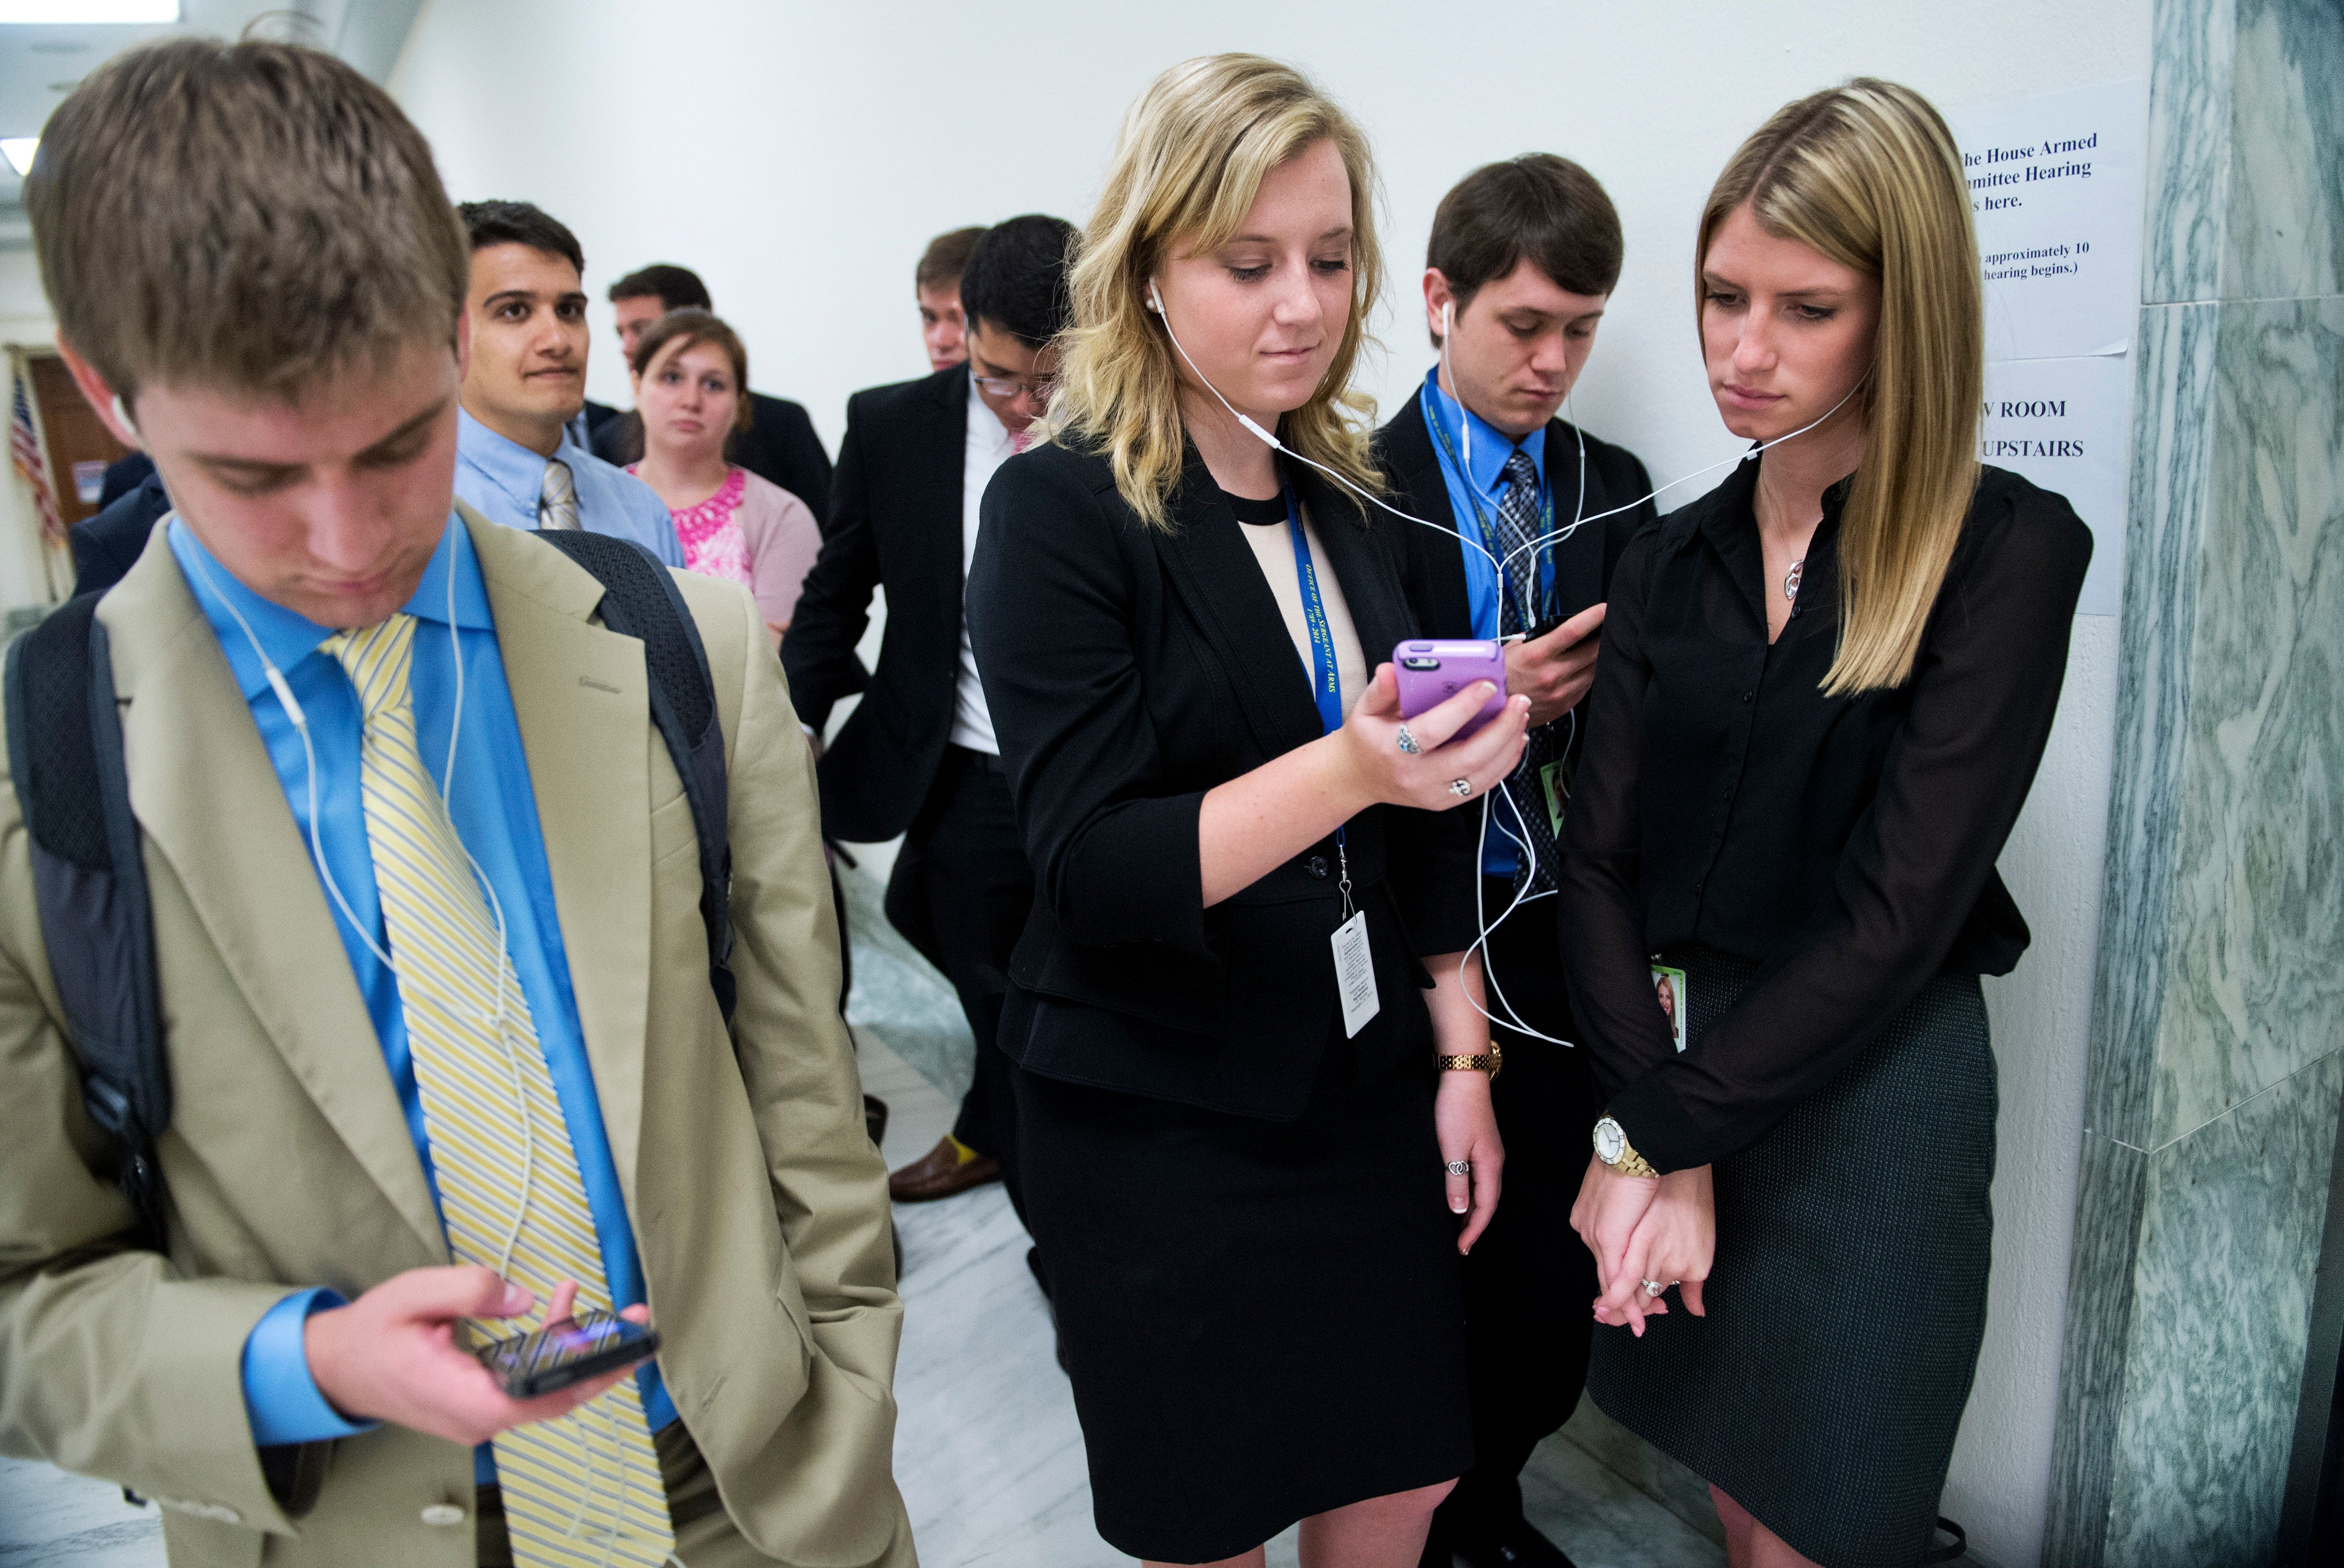 UNITED STATES - JUNE 11: Jennifer Stubbs, center, and Megan Foreman, interns for Rep. Ralph Hall, R-Texas, wait in line to see Secretary of Defense Chuck Hagel testify before a House Armed Services Committee hearing in Rayburn Building on the Sgt. Bowe Bergdahl prisoner exchange, June 11, 2014. (Photo By Tom Williams/CQ Roll Call)